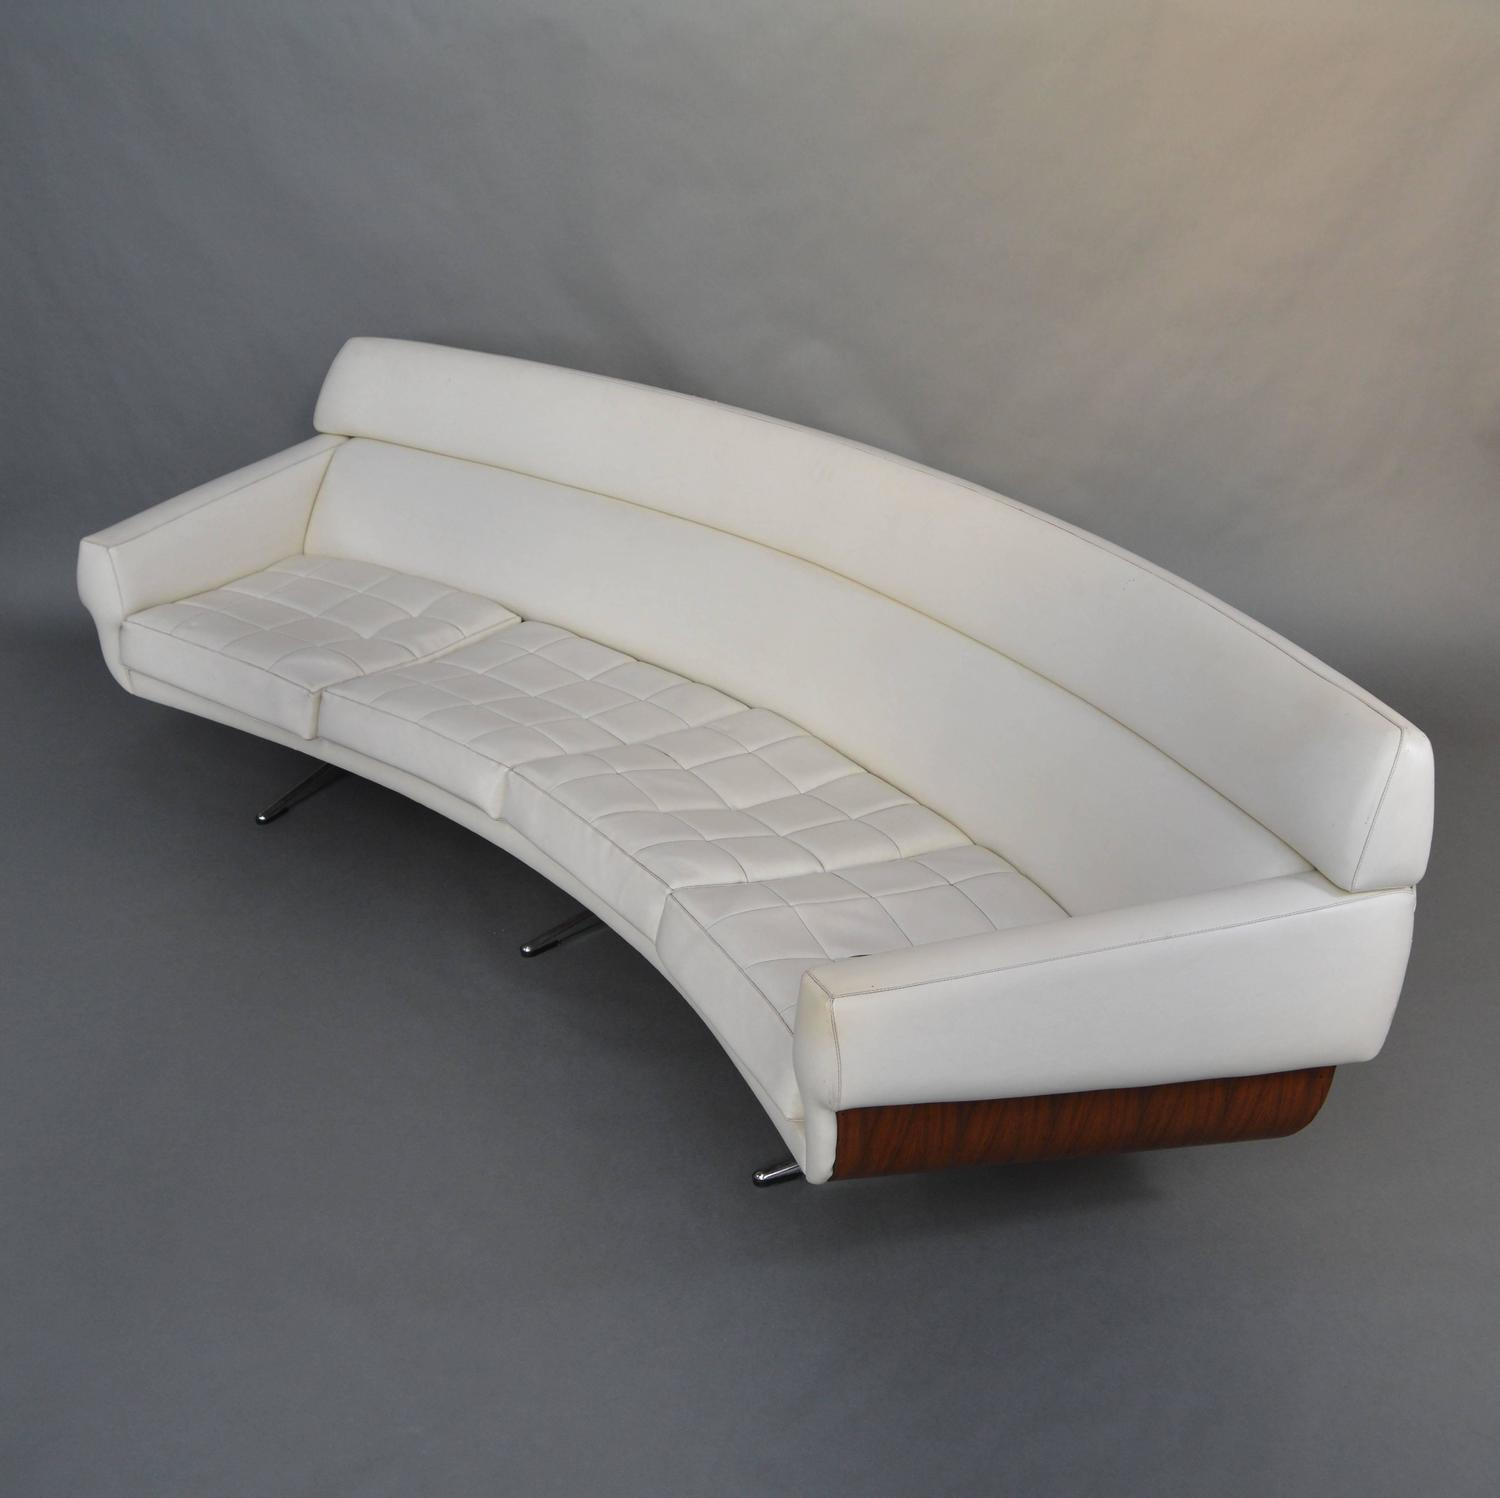 Extraordinary Curved Four Seat Sofa by Martin Stoll Germany 1960s For Sale at 1stdibs